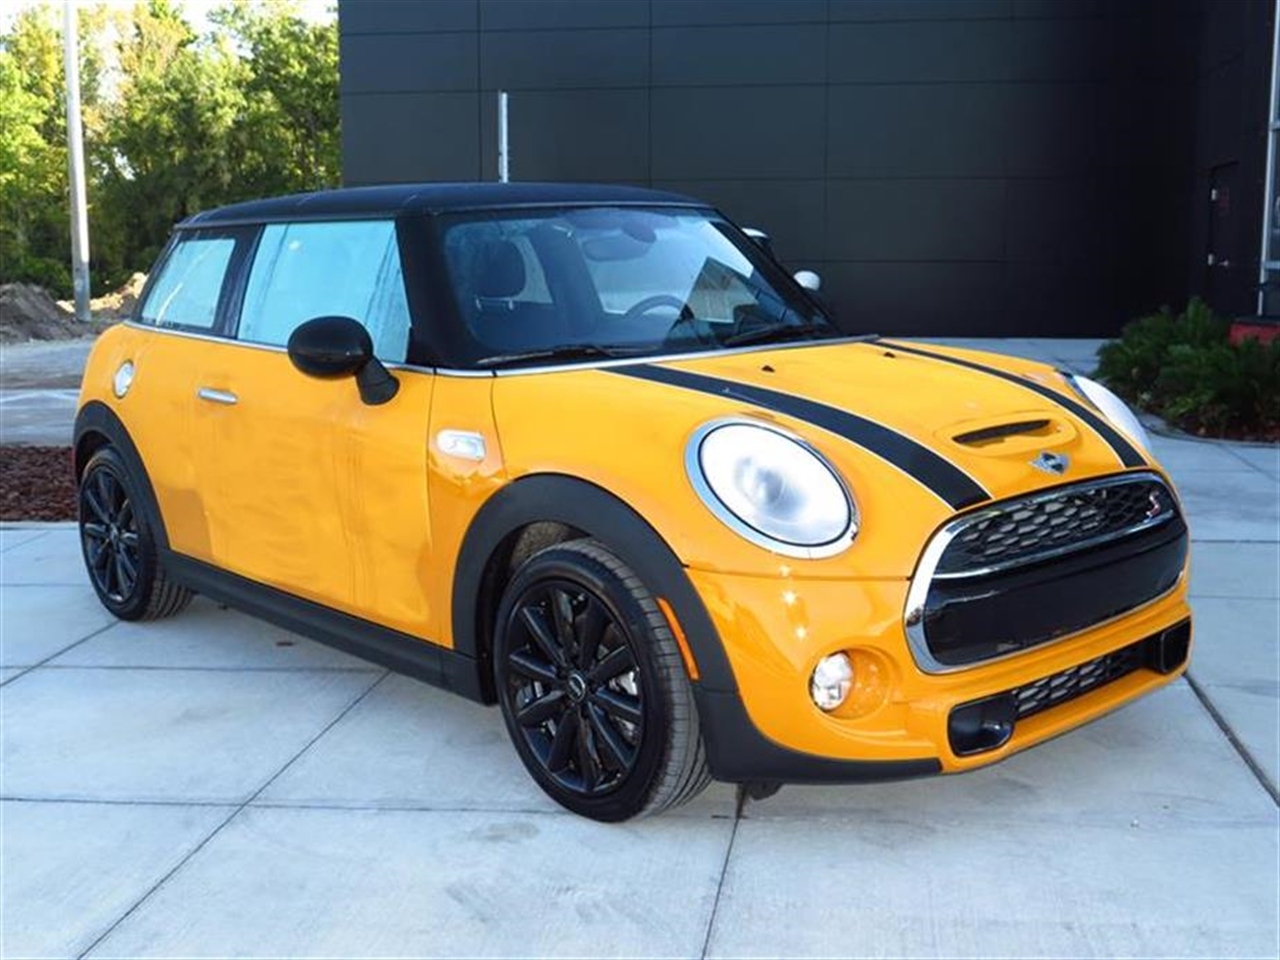 2015 MINI COOPER HARDTOP 2dr Cpe S 0 miles 1 12V DC Power Outlet 2 Seatback Storage Pockets 4 Pe